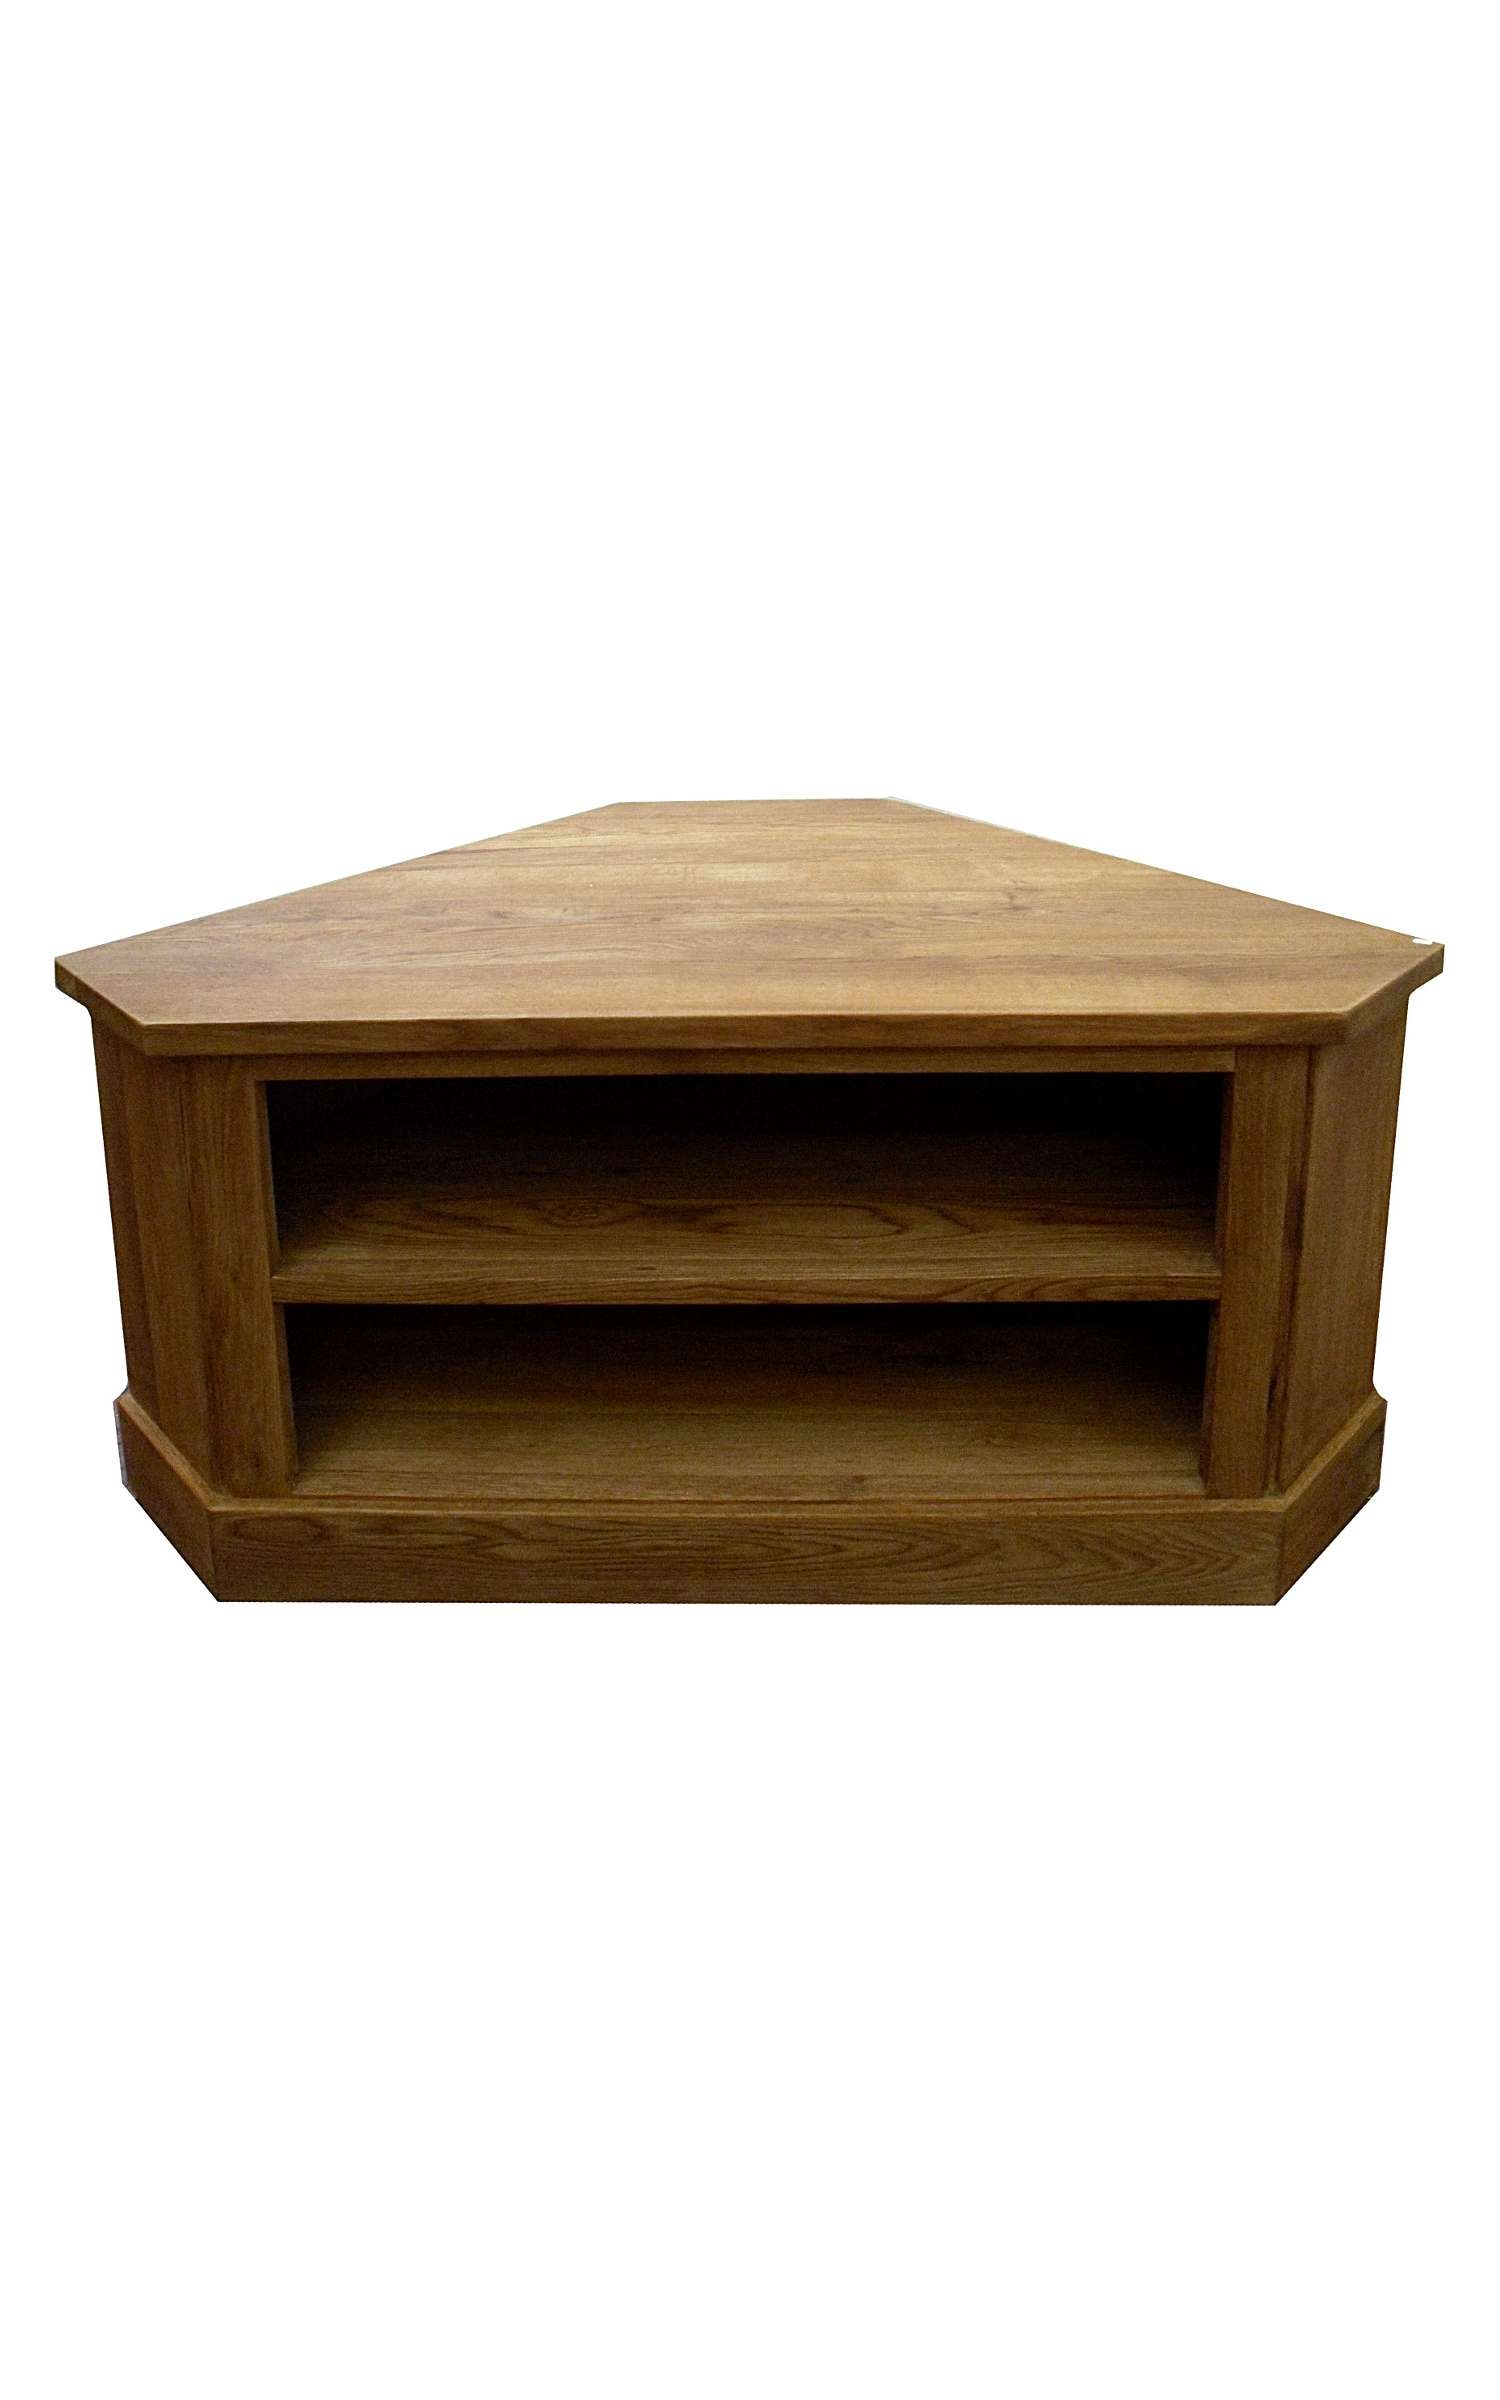 Small Wooden Corner Tv Stand Console Cabinet With Fireplace And Within Pine Corner Tv Stands (View 12 of 15)